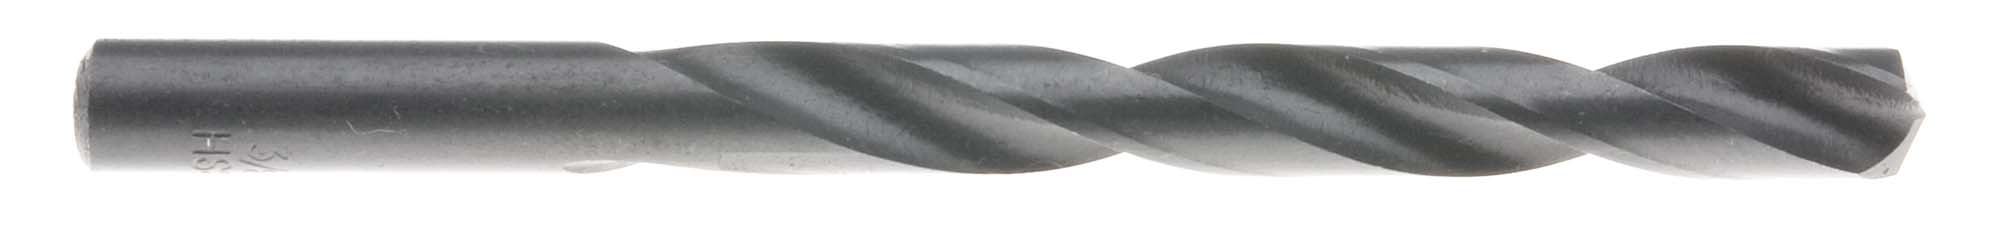 "JSP-5/16  5/16"" Heavy Duty 135 Degree Split Point Jobber Length Drill Bit, High Speed Steel"